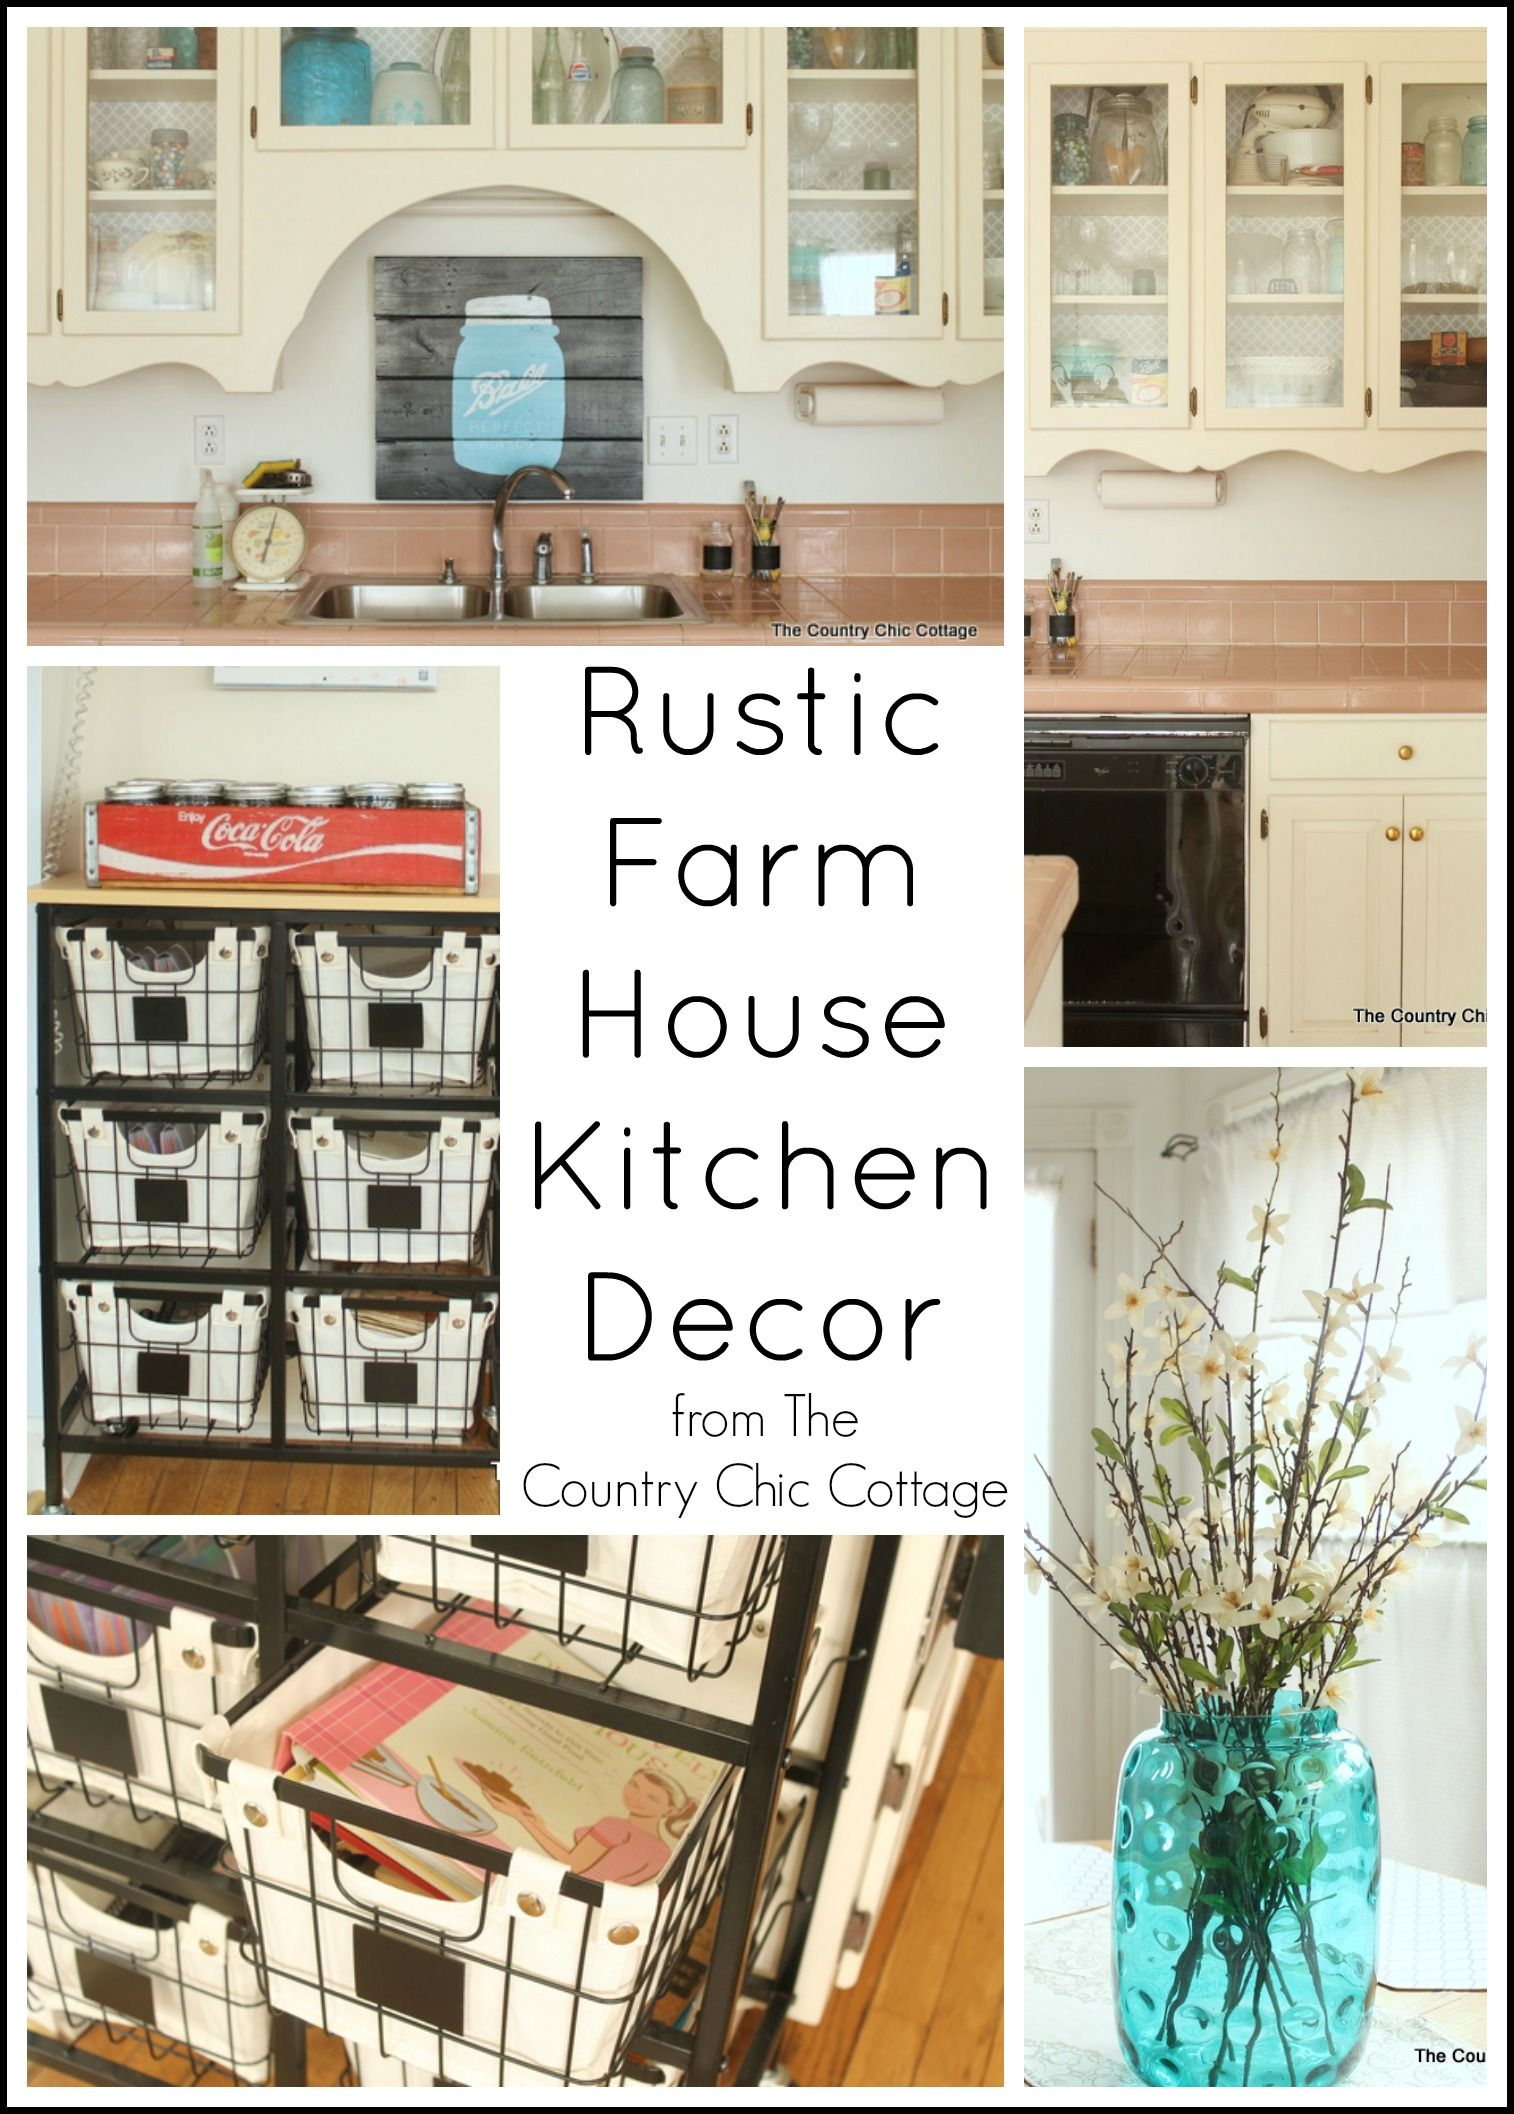 Rustic Kitchen Decor On Pinterest Wildlife Decor Bear Decor And Vintage Kitchen Decor